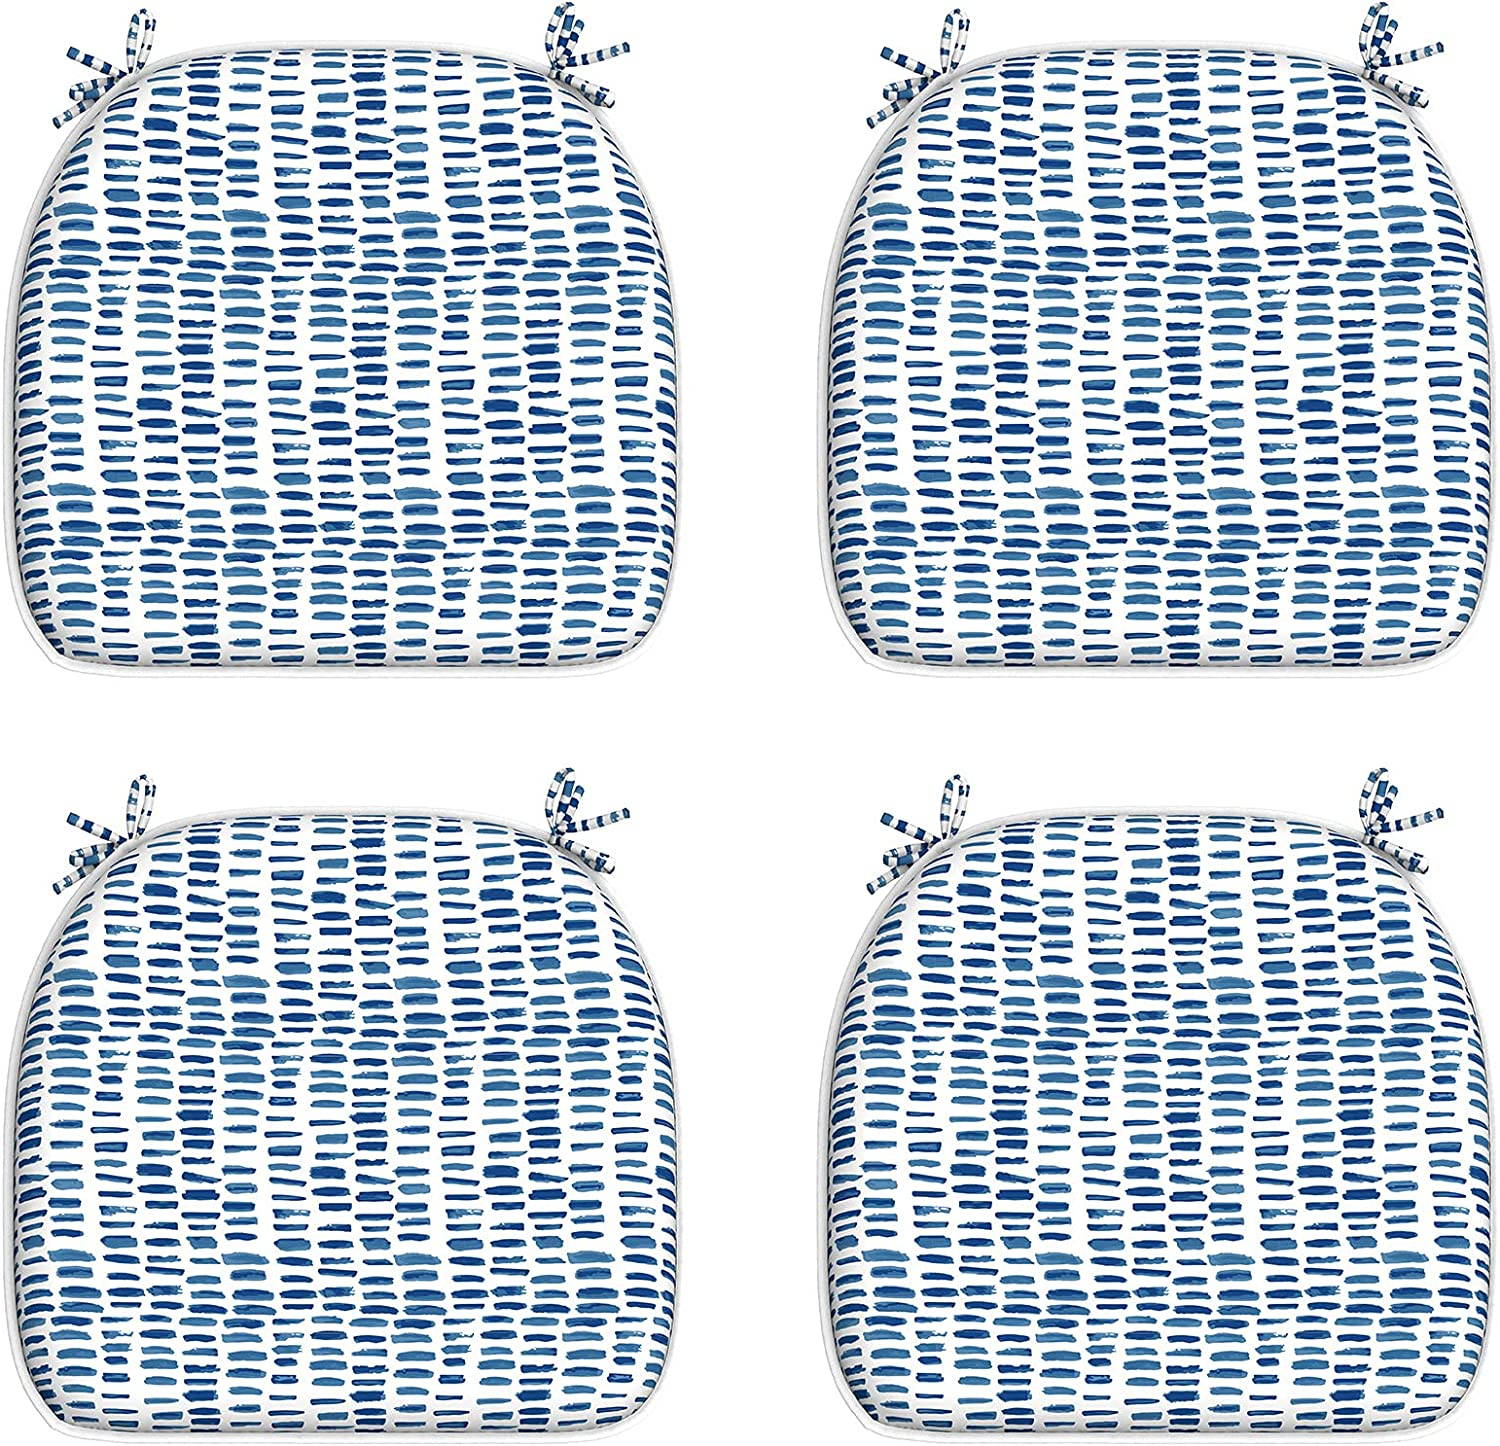 """LVTXIII Outdoor/Indoor Seat Cushions Patio Chair Pads with Ties, Water-Repellent Chair Cushions for Home Office and Patio Garden Furniture Decoration 16""""x17"""", Blue Pebble, Set of 4"""